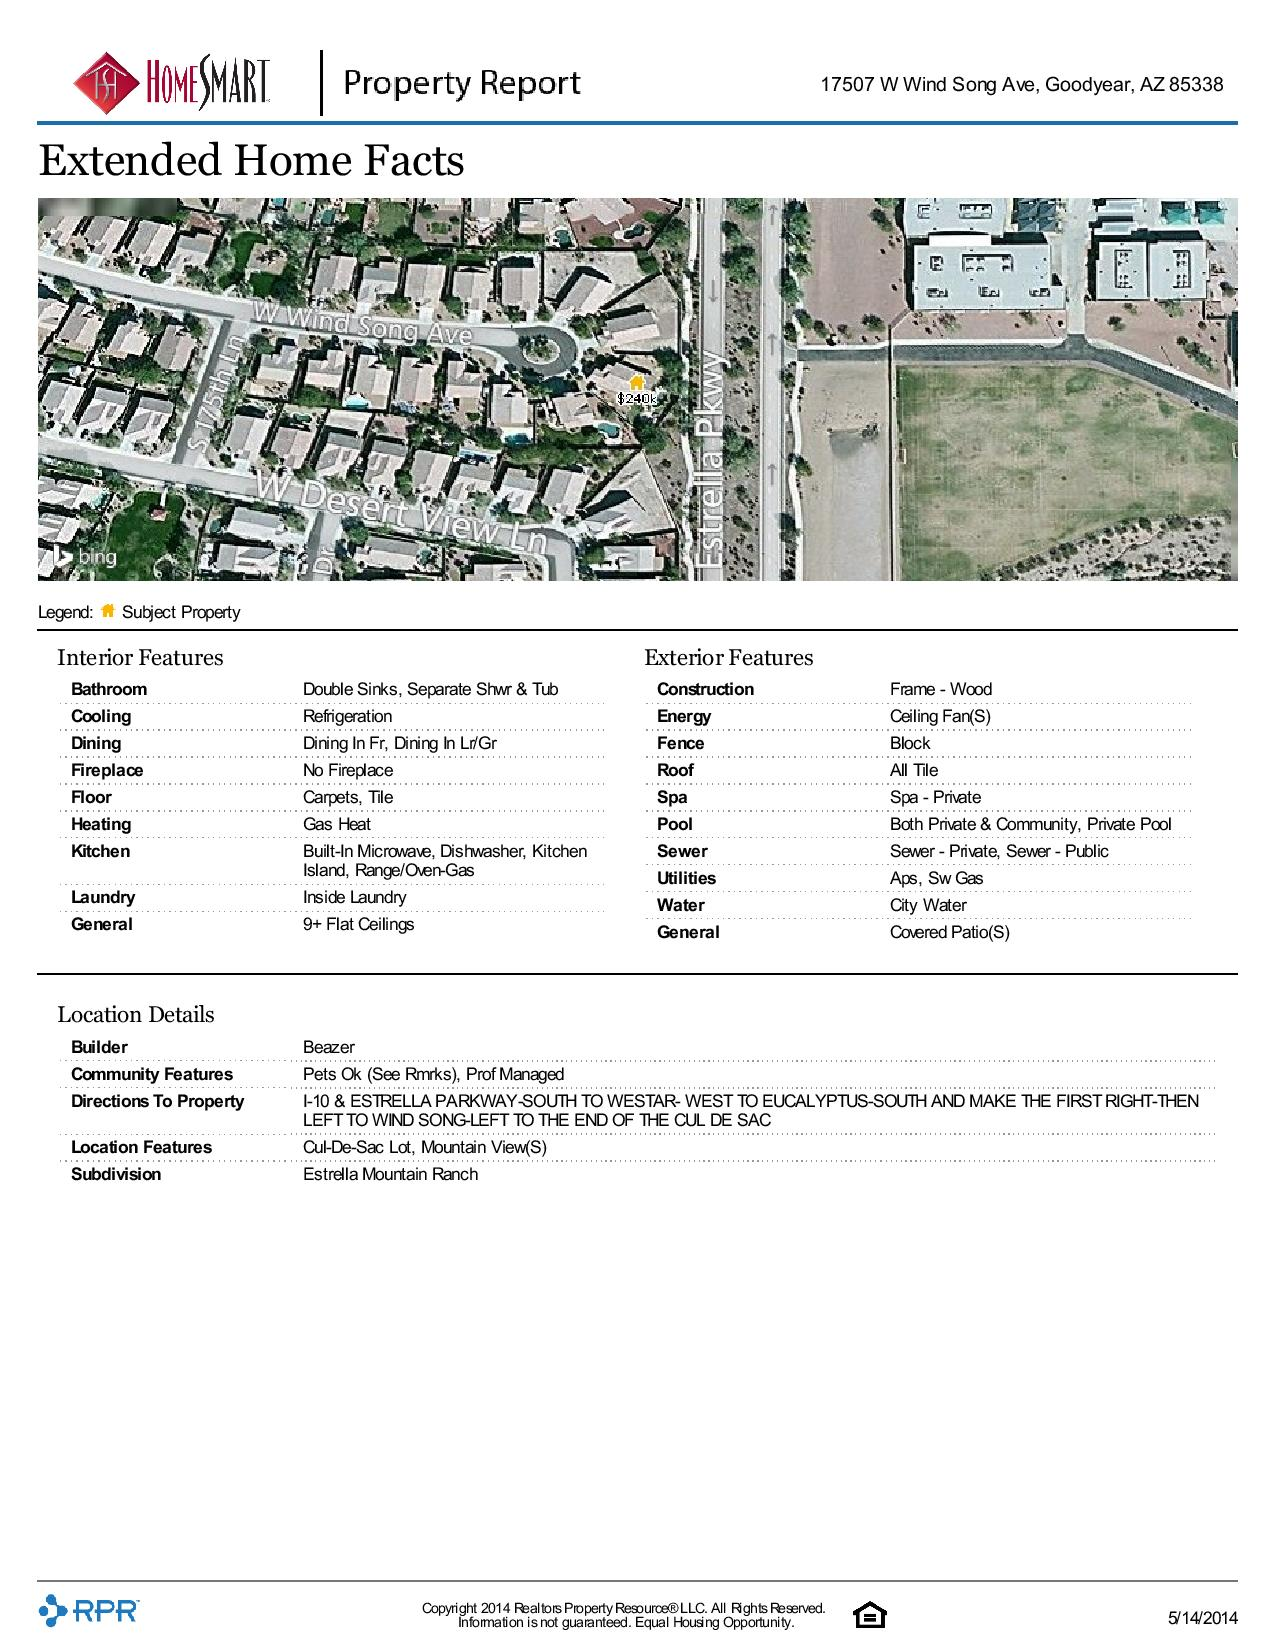 17507-W-Wind-Song-Ave-Goodyear-AZ-85338-page-004